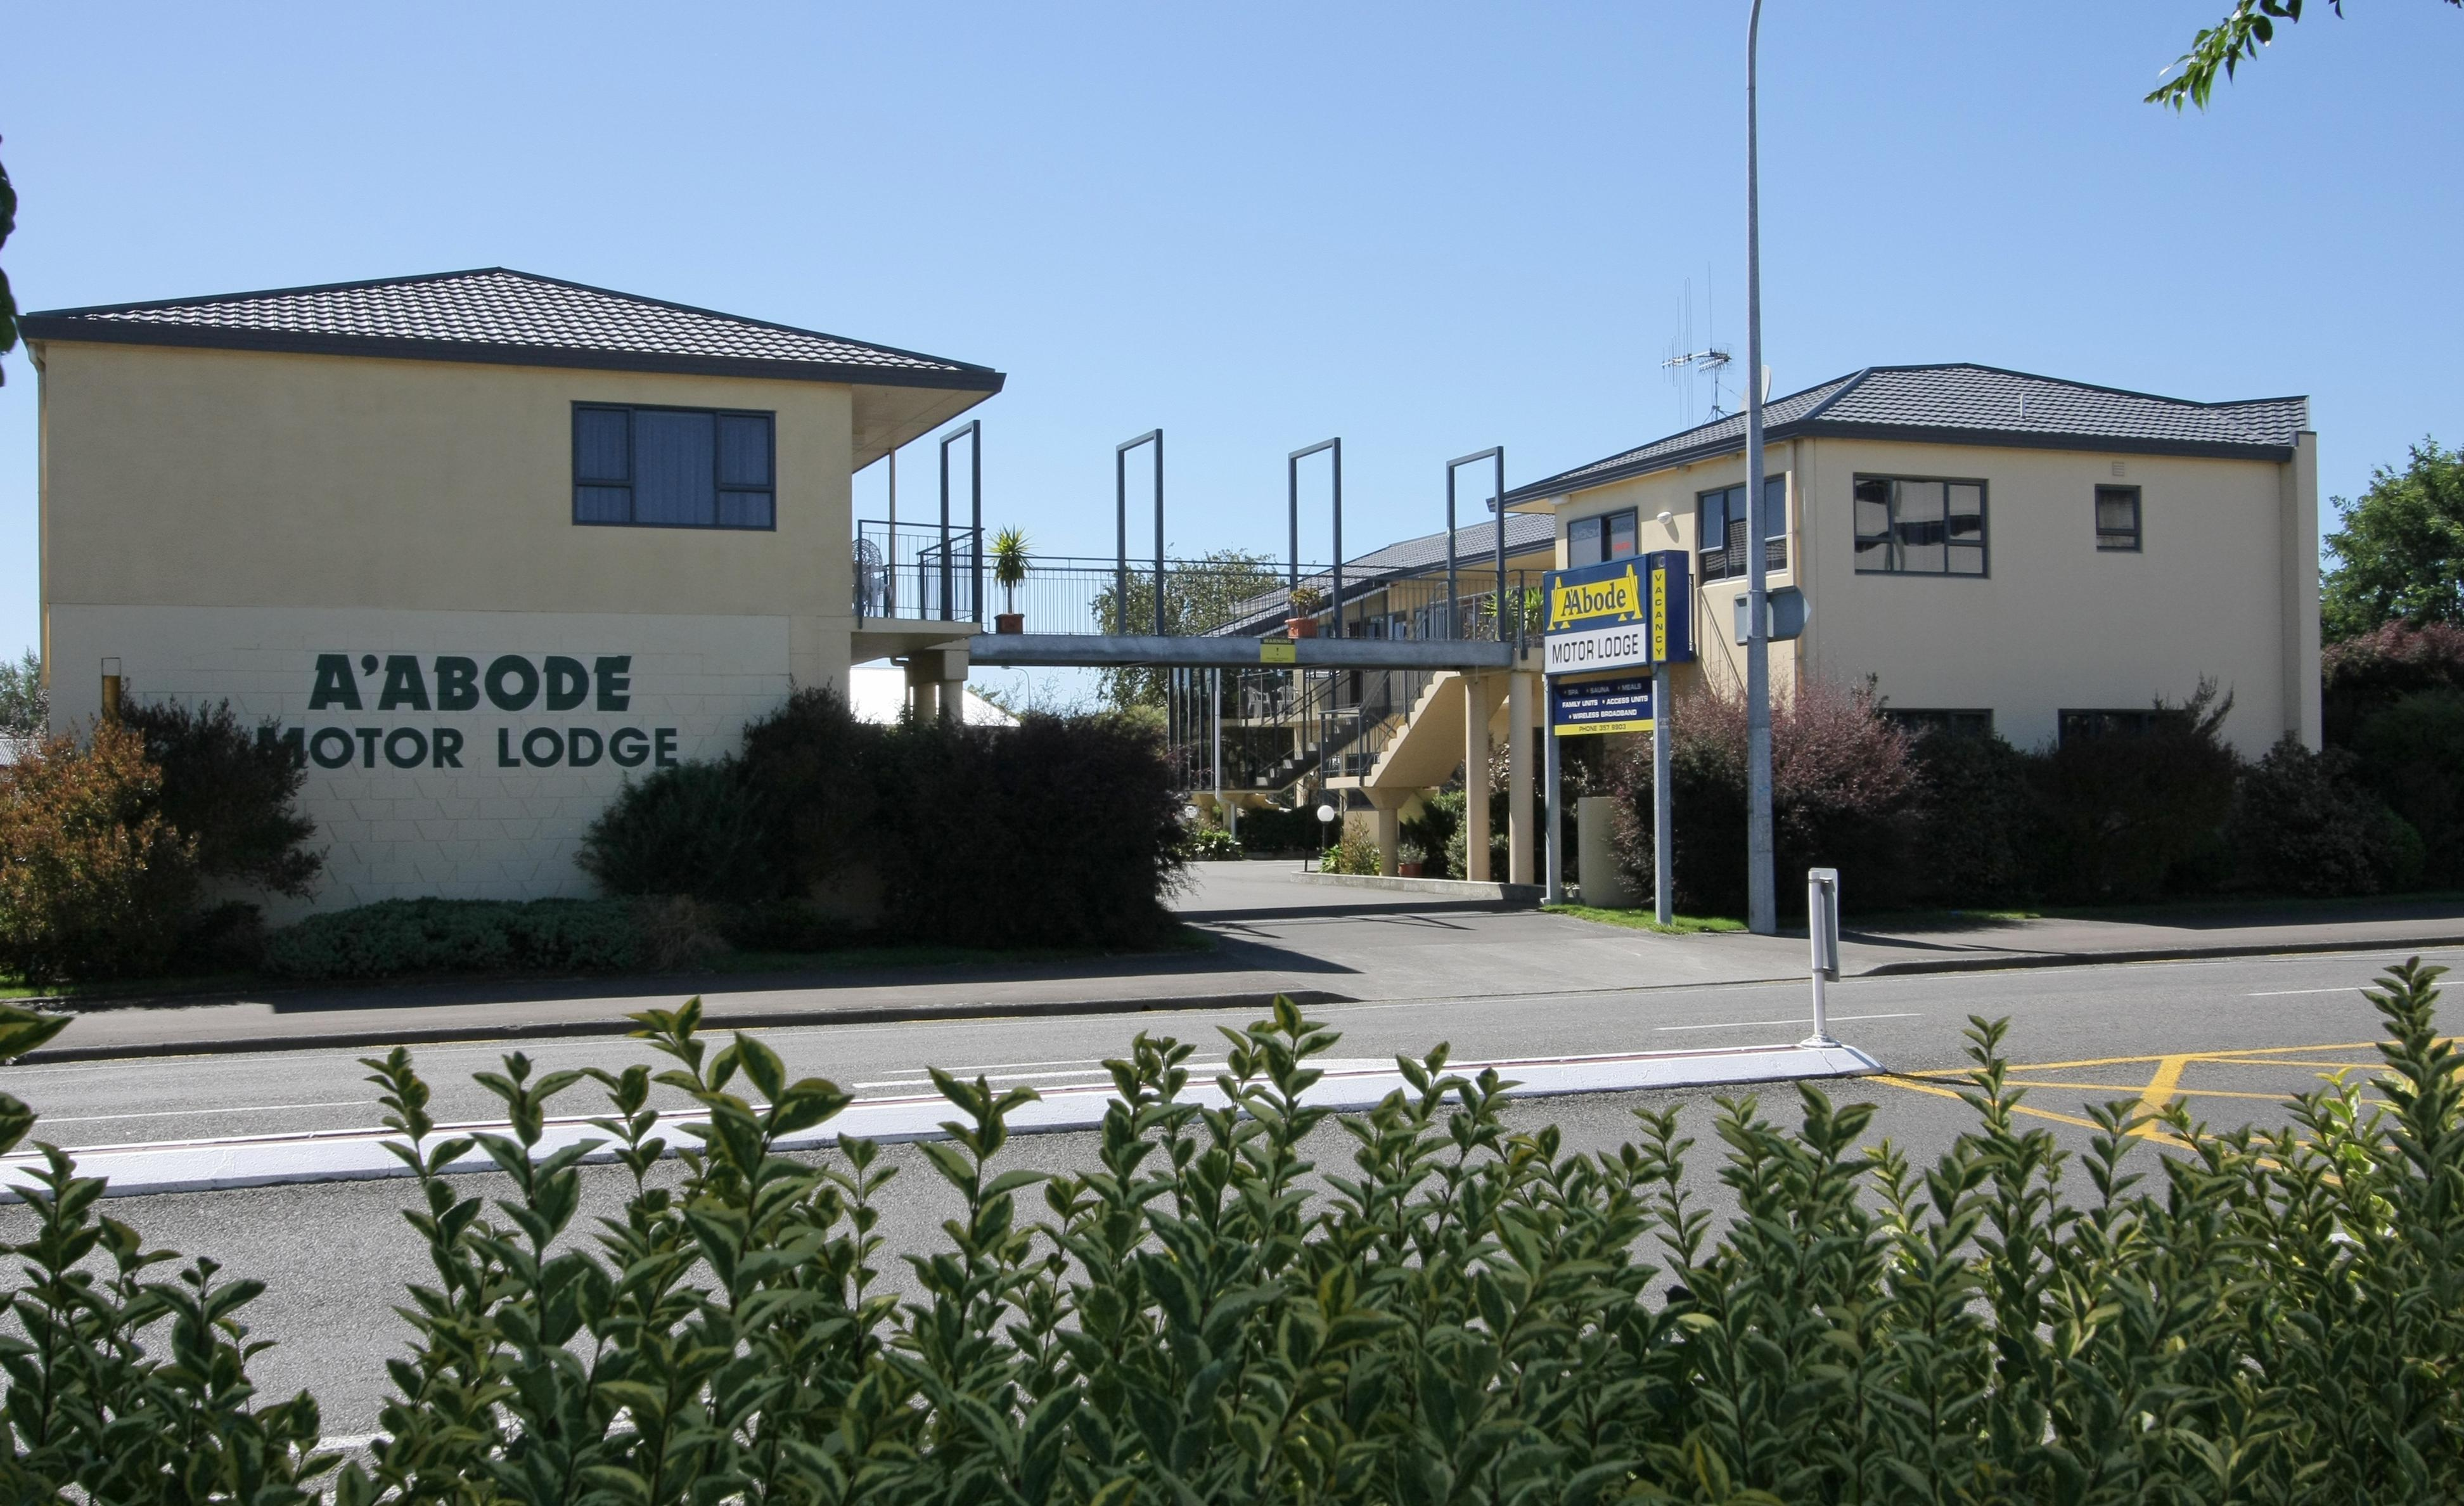 A' Abode Motor Lodge